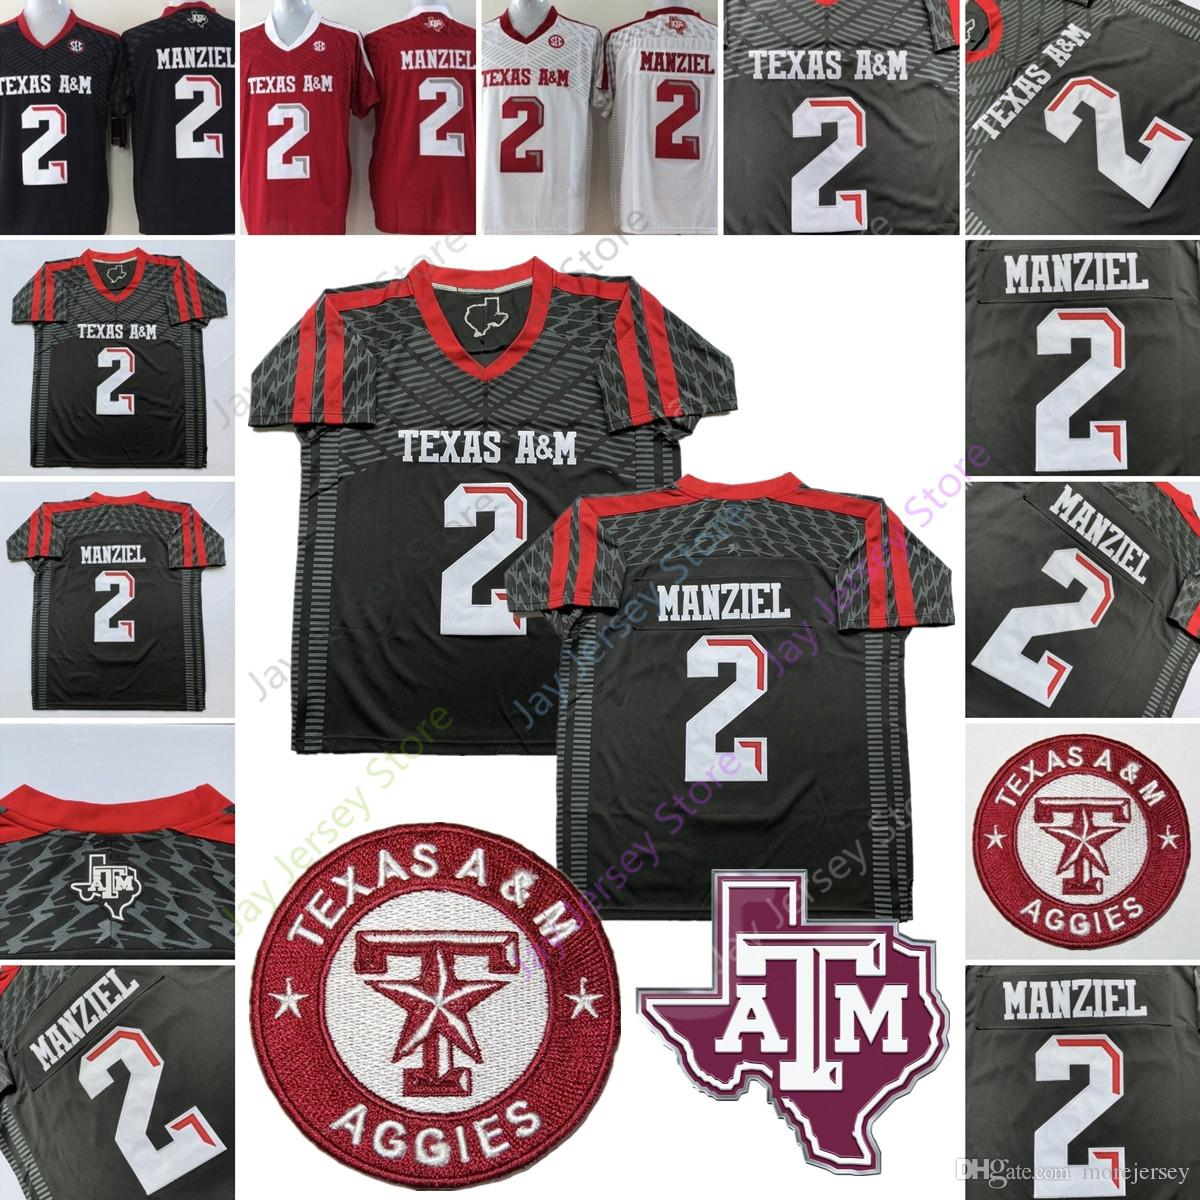 classic fit 324b1 8e68d Johnny Manziel College Jersey NCAA Texas A&M Aggies Football Jerseys Home  Away Black Red White Men Size S M L XL 2XL 3XL